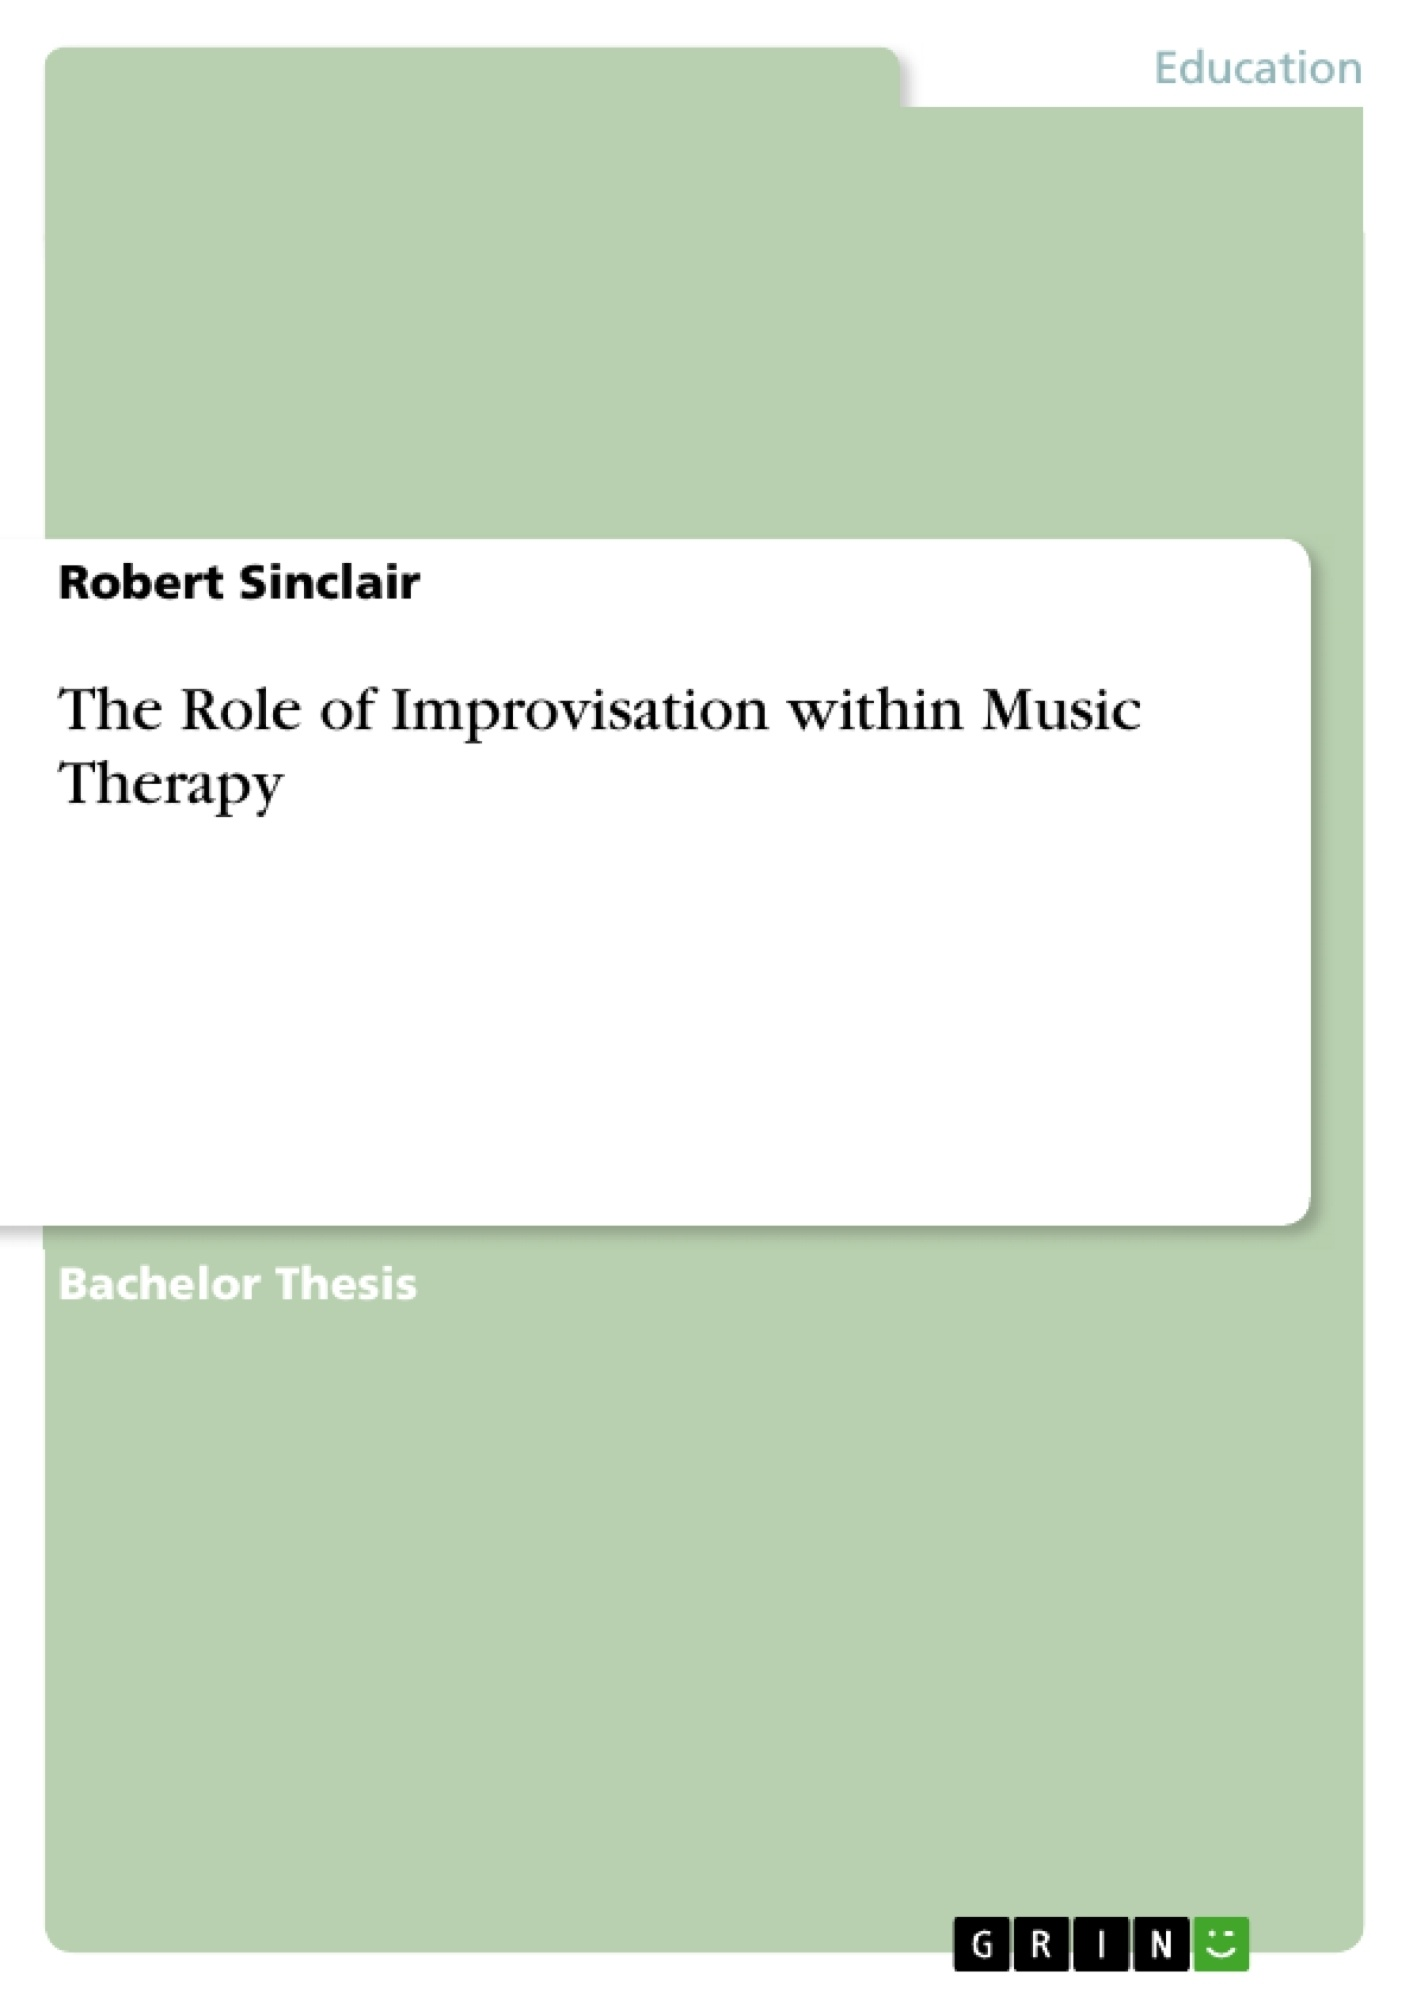 Title: The Role of Improvisation within Music Therapy